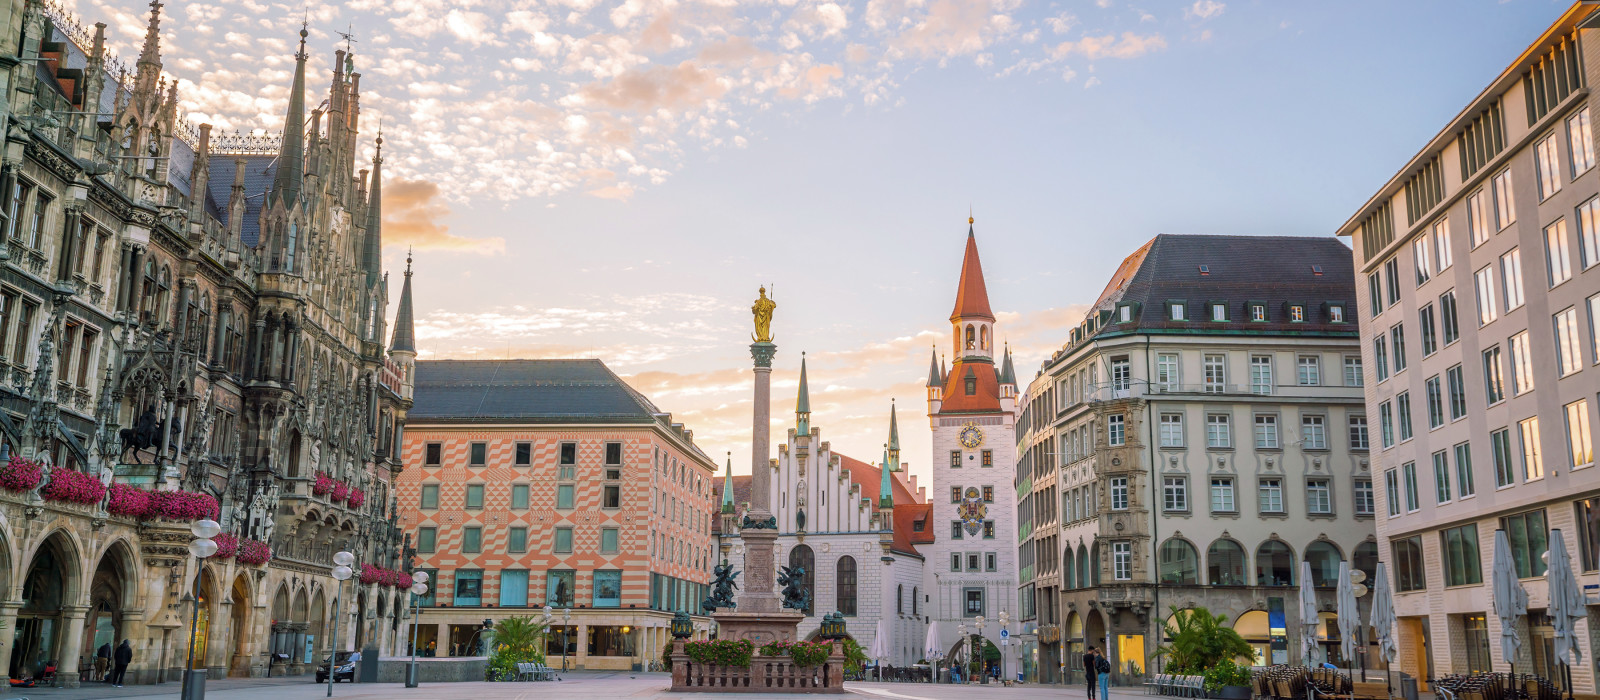 Old Town Hall at Marienplatz Square in Munich, Germany, Europe